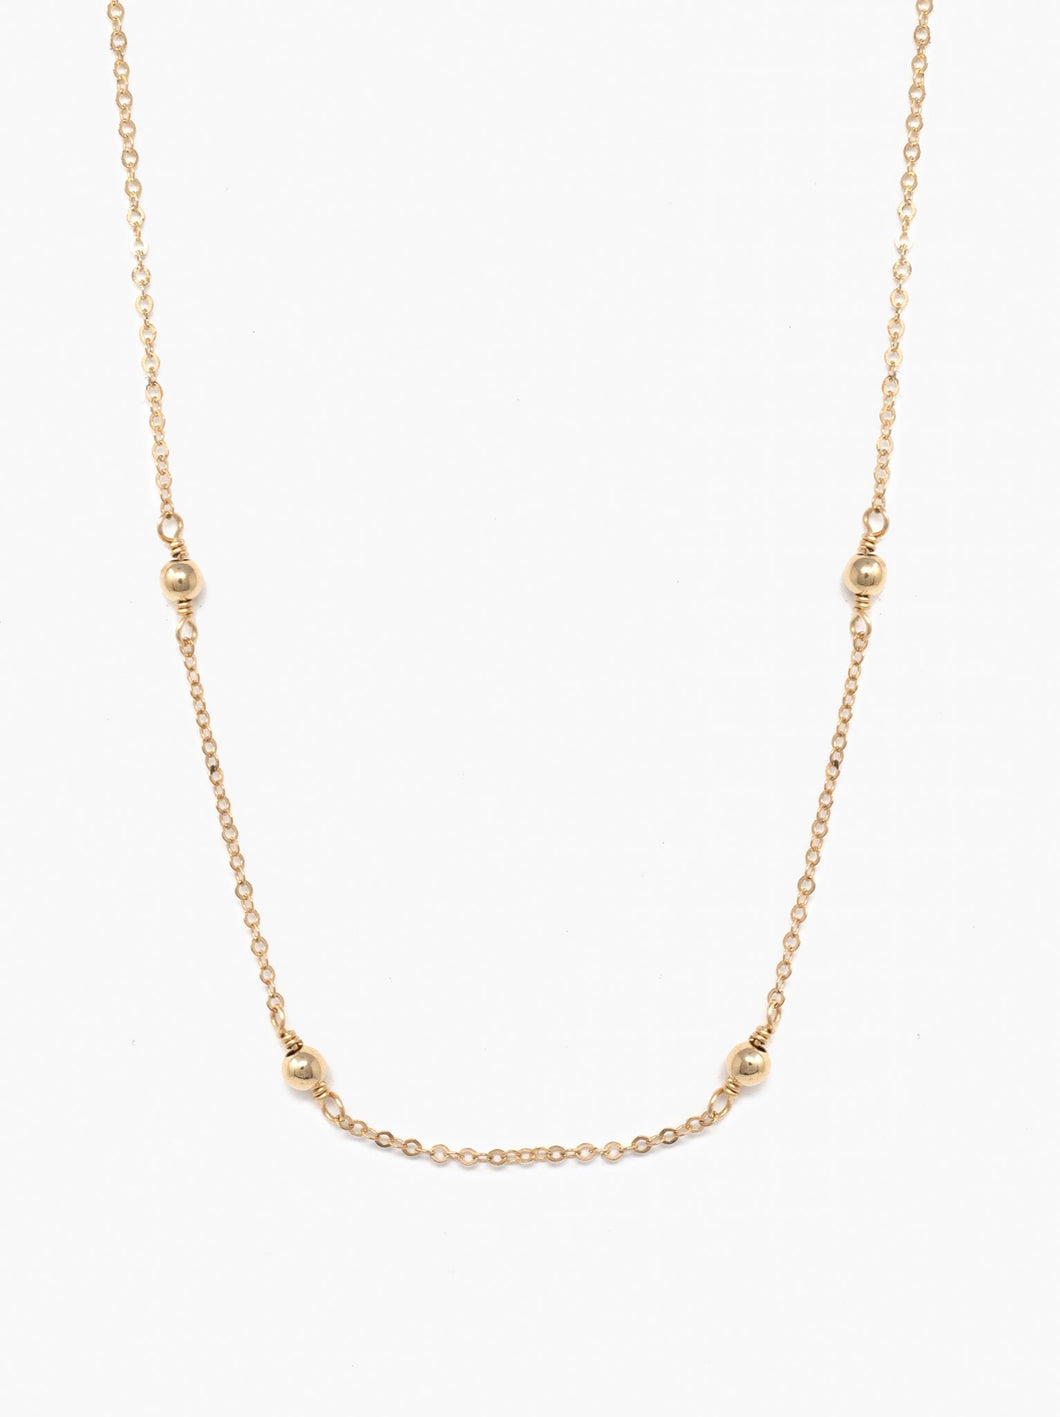 Able Halcyon Necklace